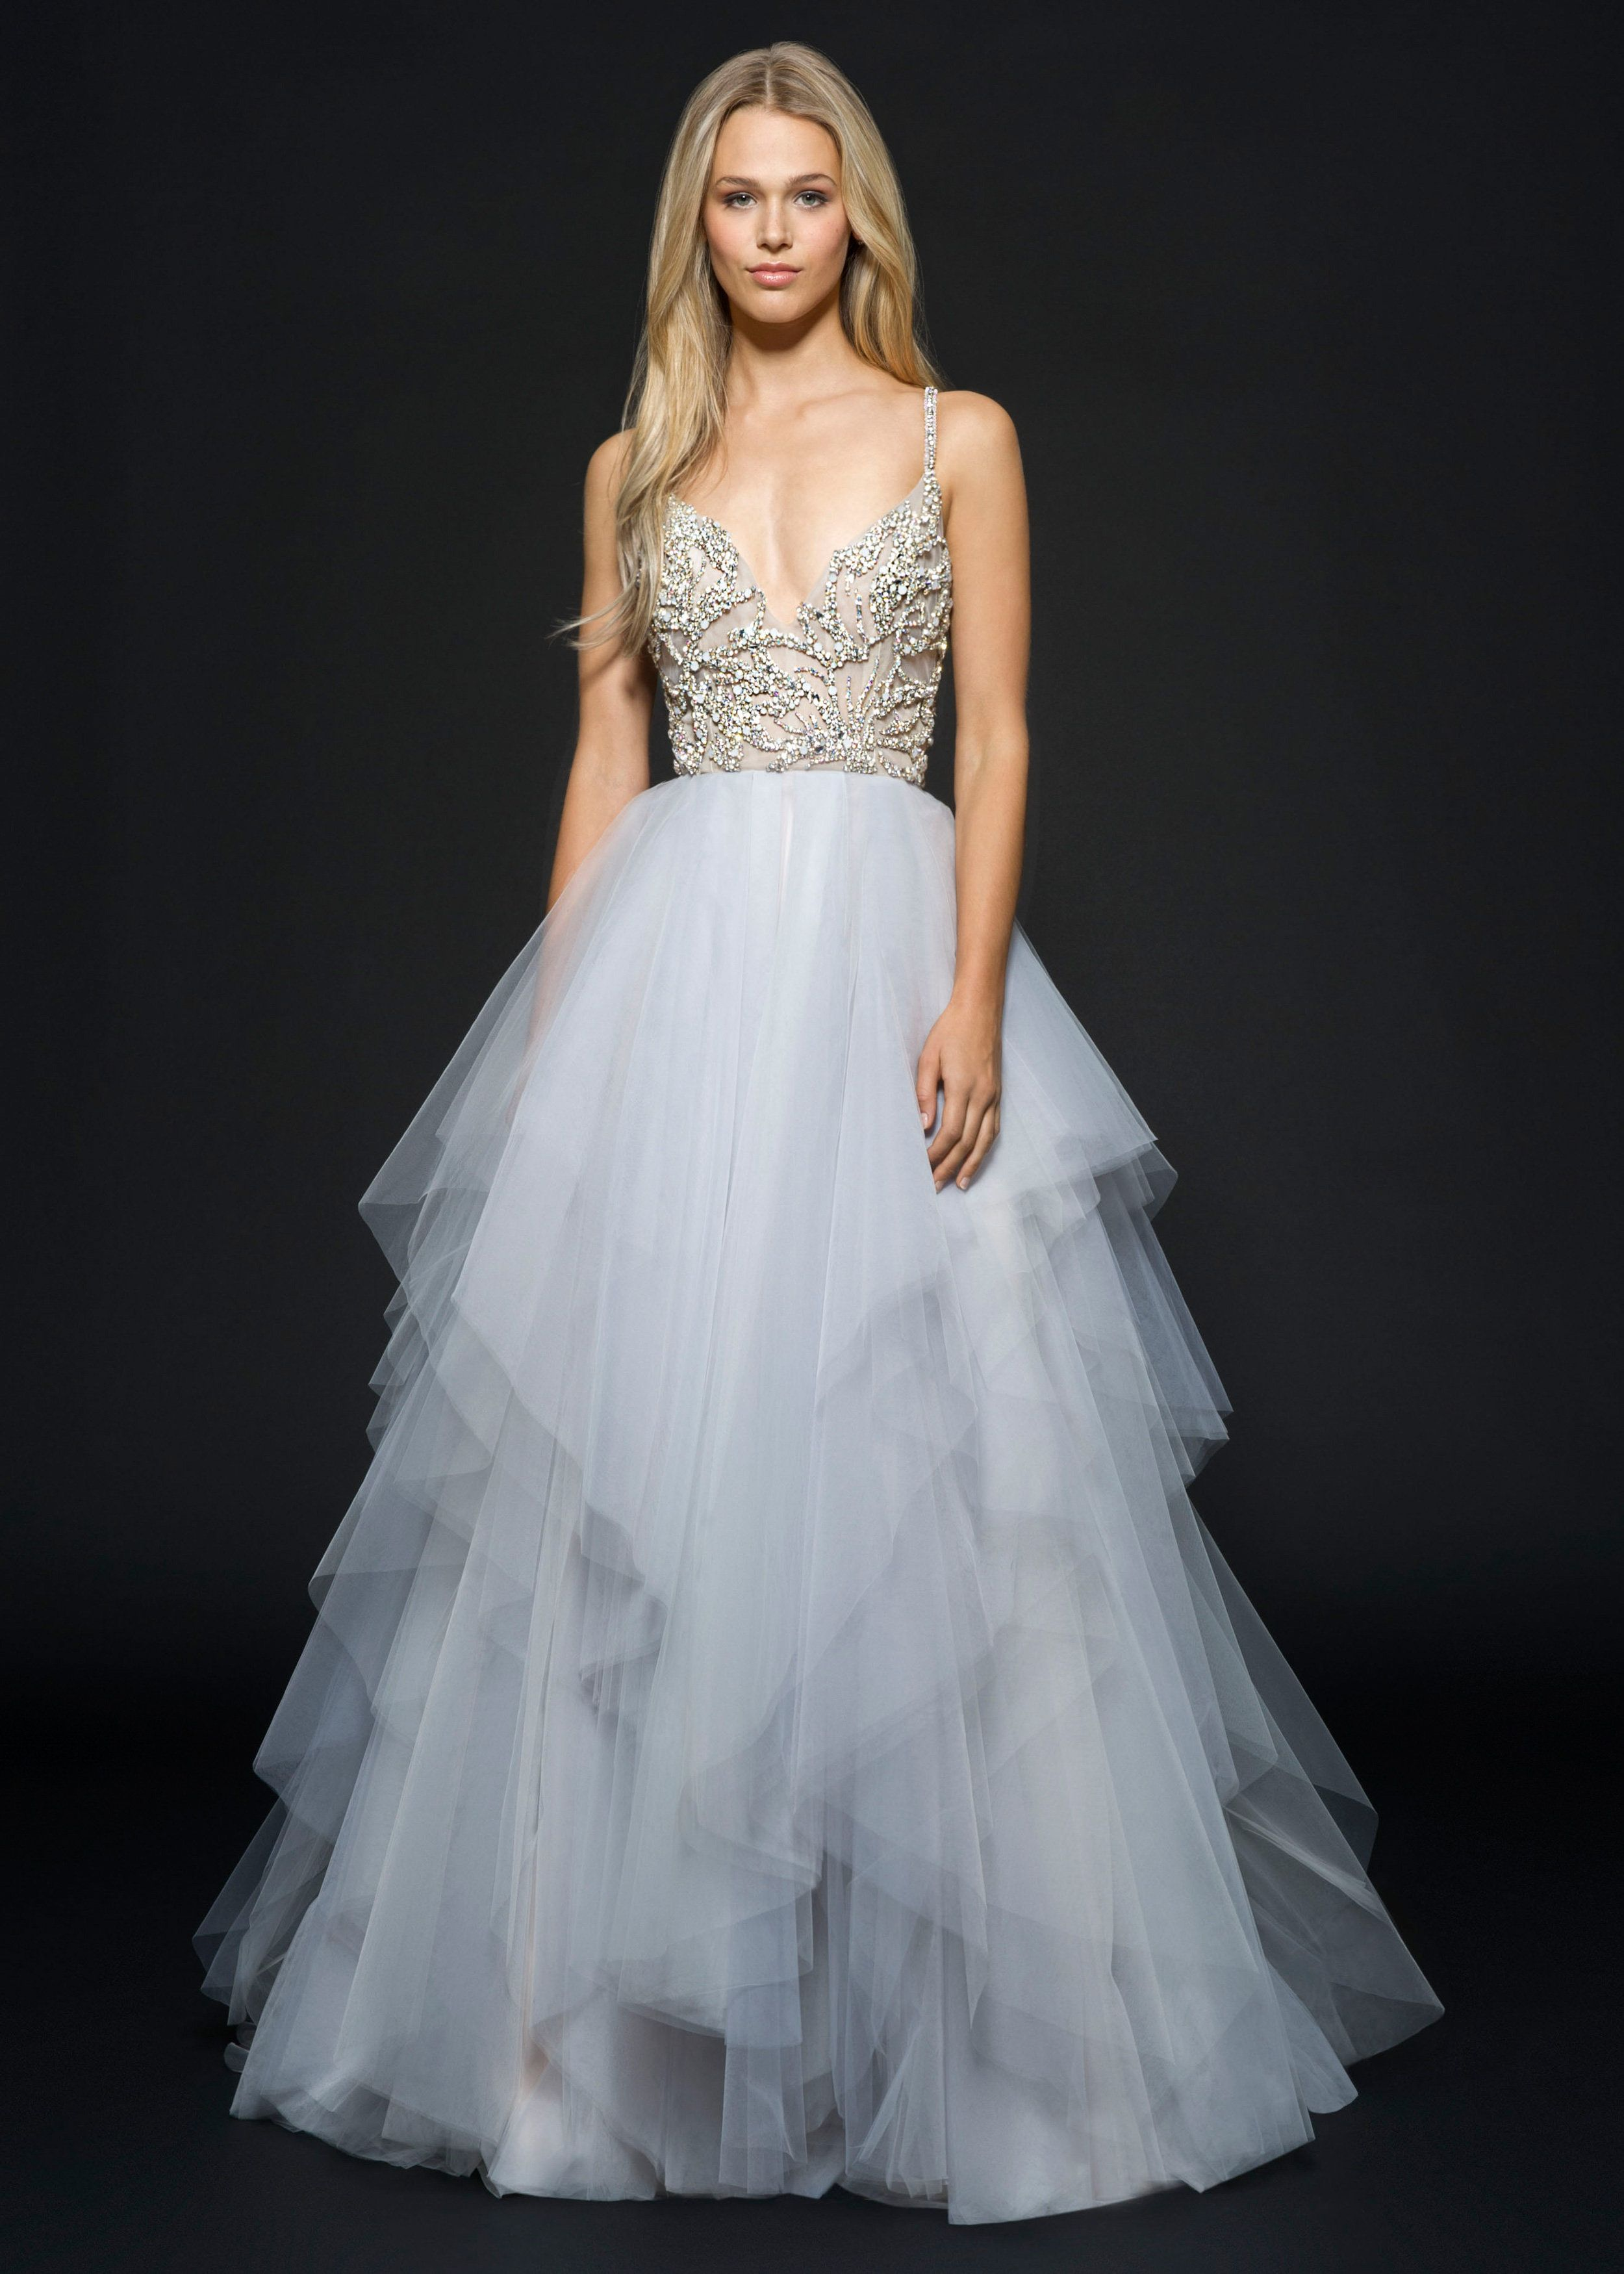 Bridal Gowns and Wedding Dresses by JLM Couture - Hayley Paige Style ...